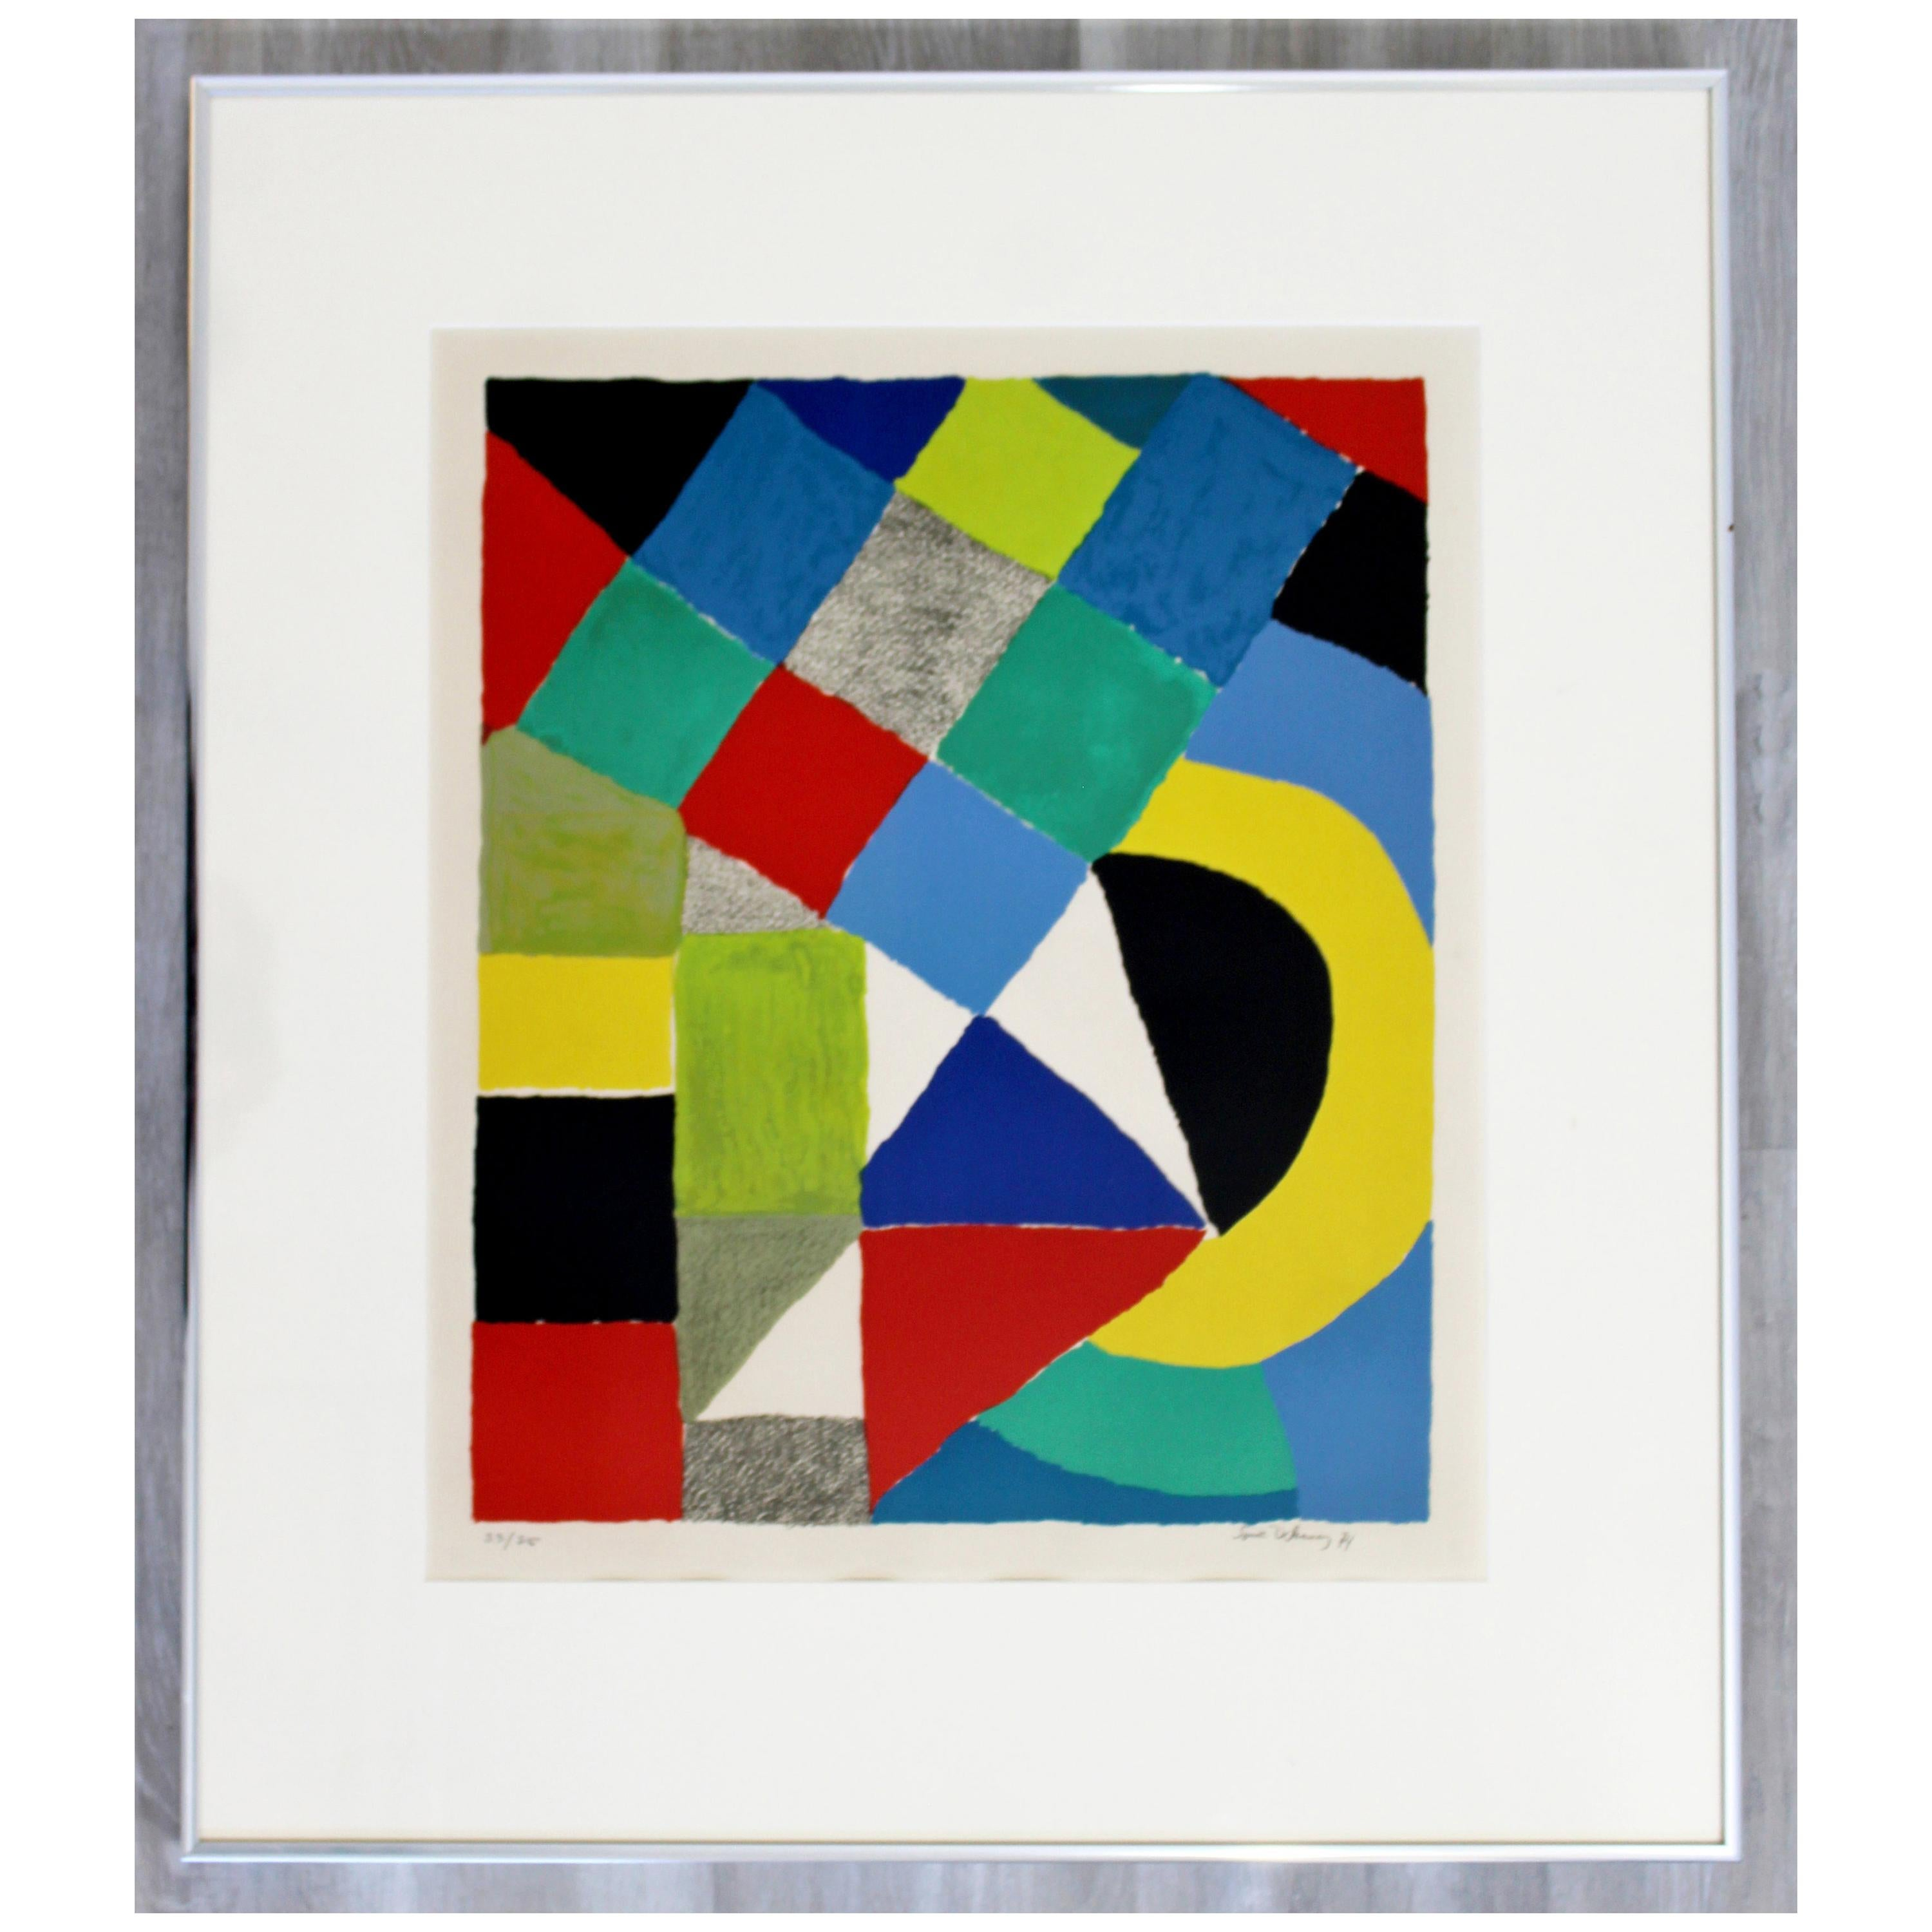 Mid-Century Modern Framed Lithograph Signed Sonia Delaunay Arlequin 53/75, 1970s